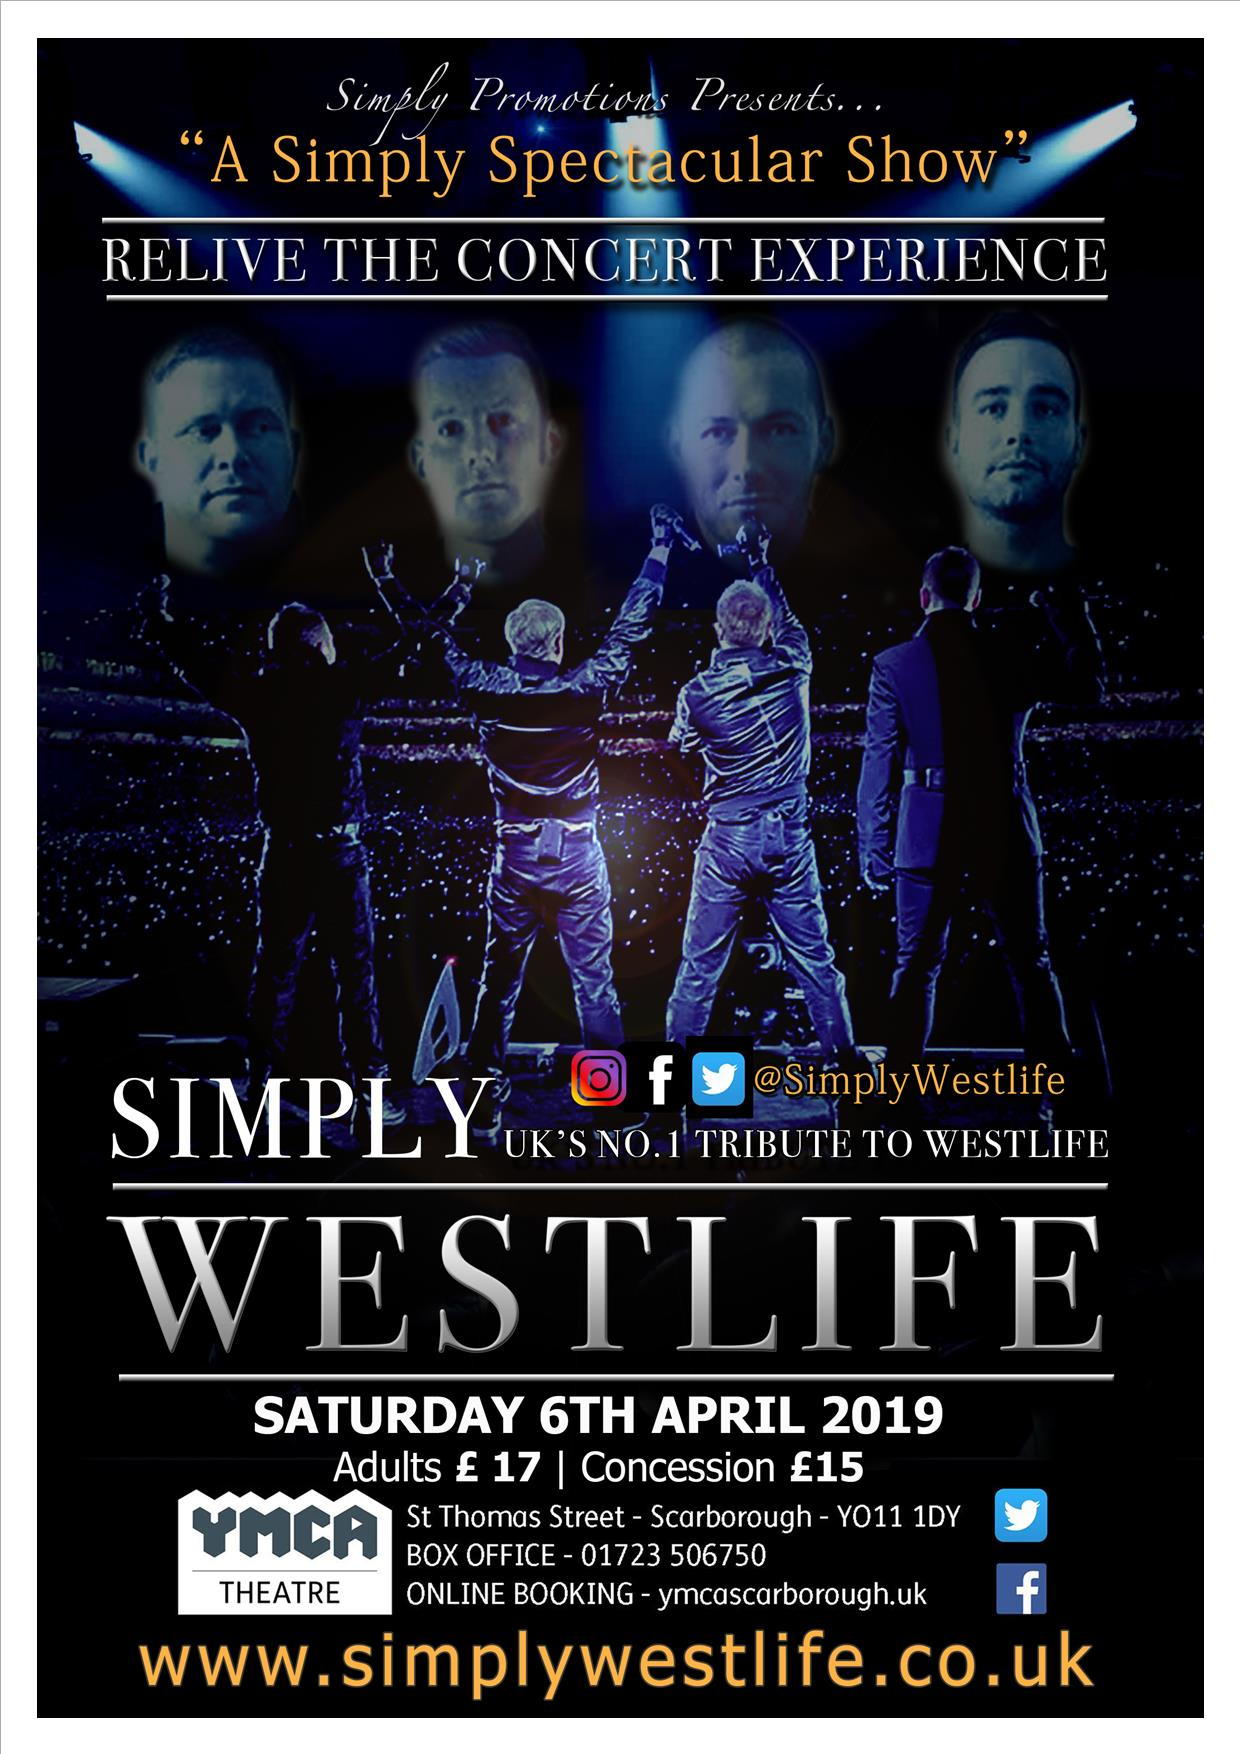 SIMPLY WESTLIFE at YMCA Theatre event tickets from TicketSource